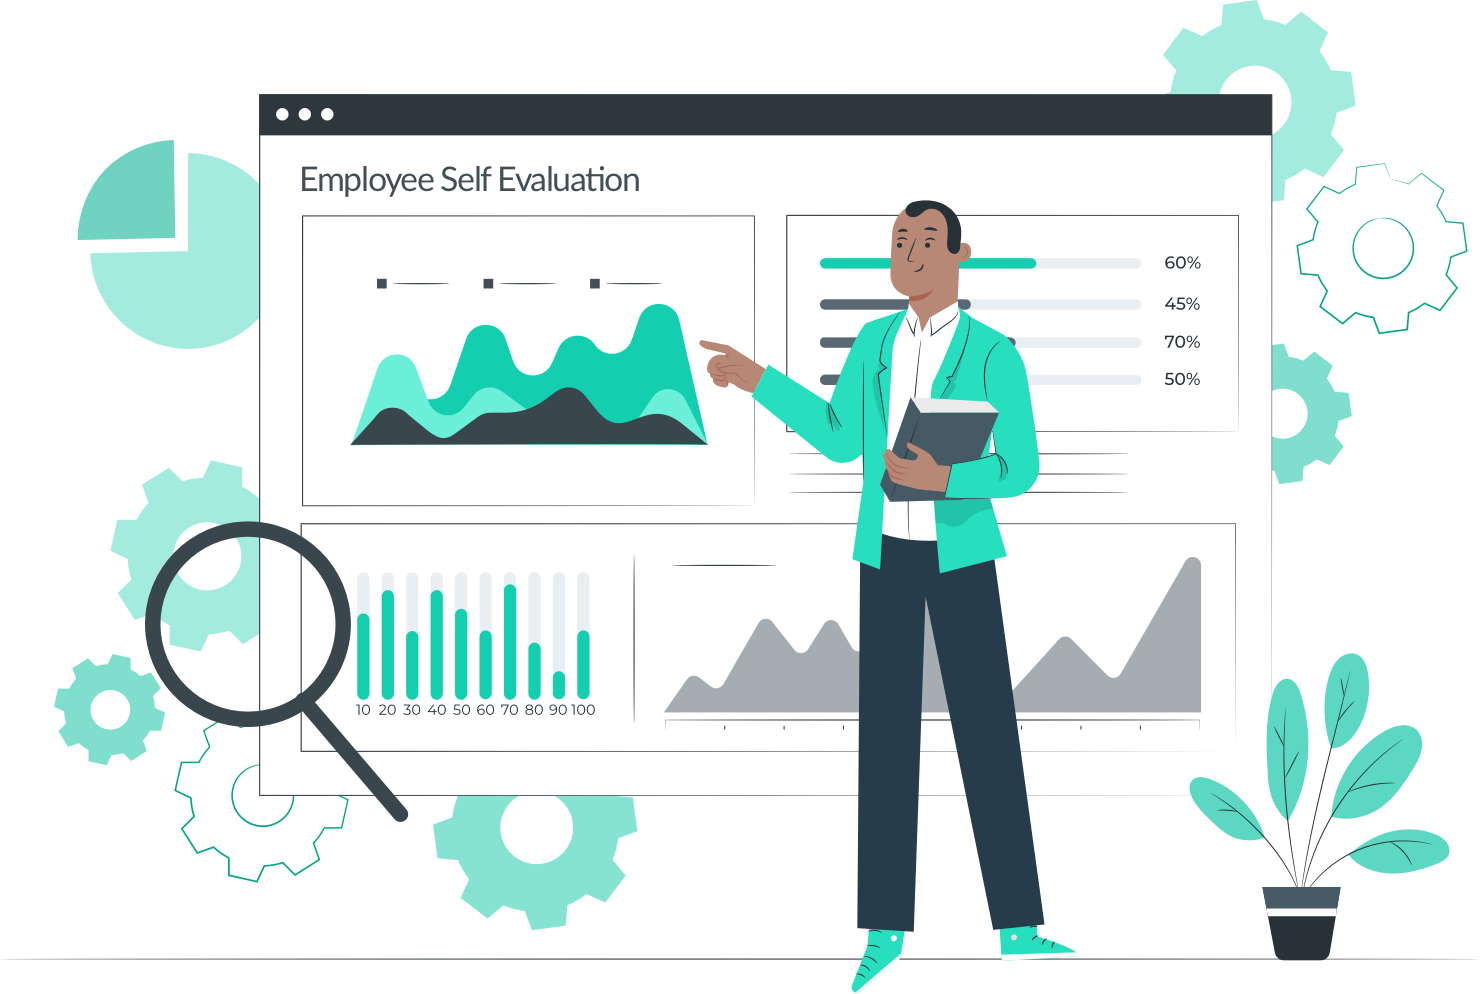 What is the employee self-evaluation and why is it important?